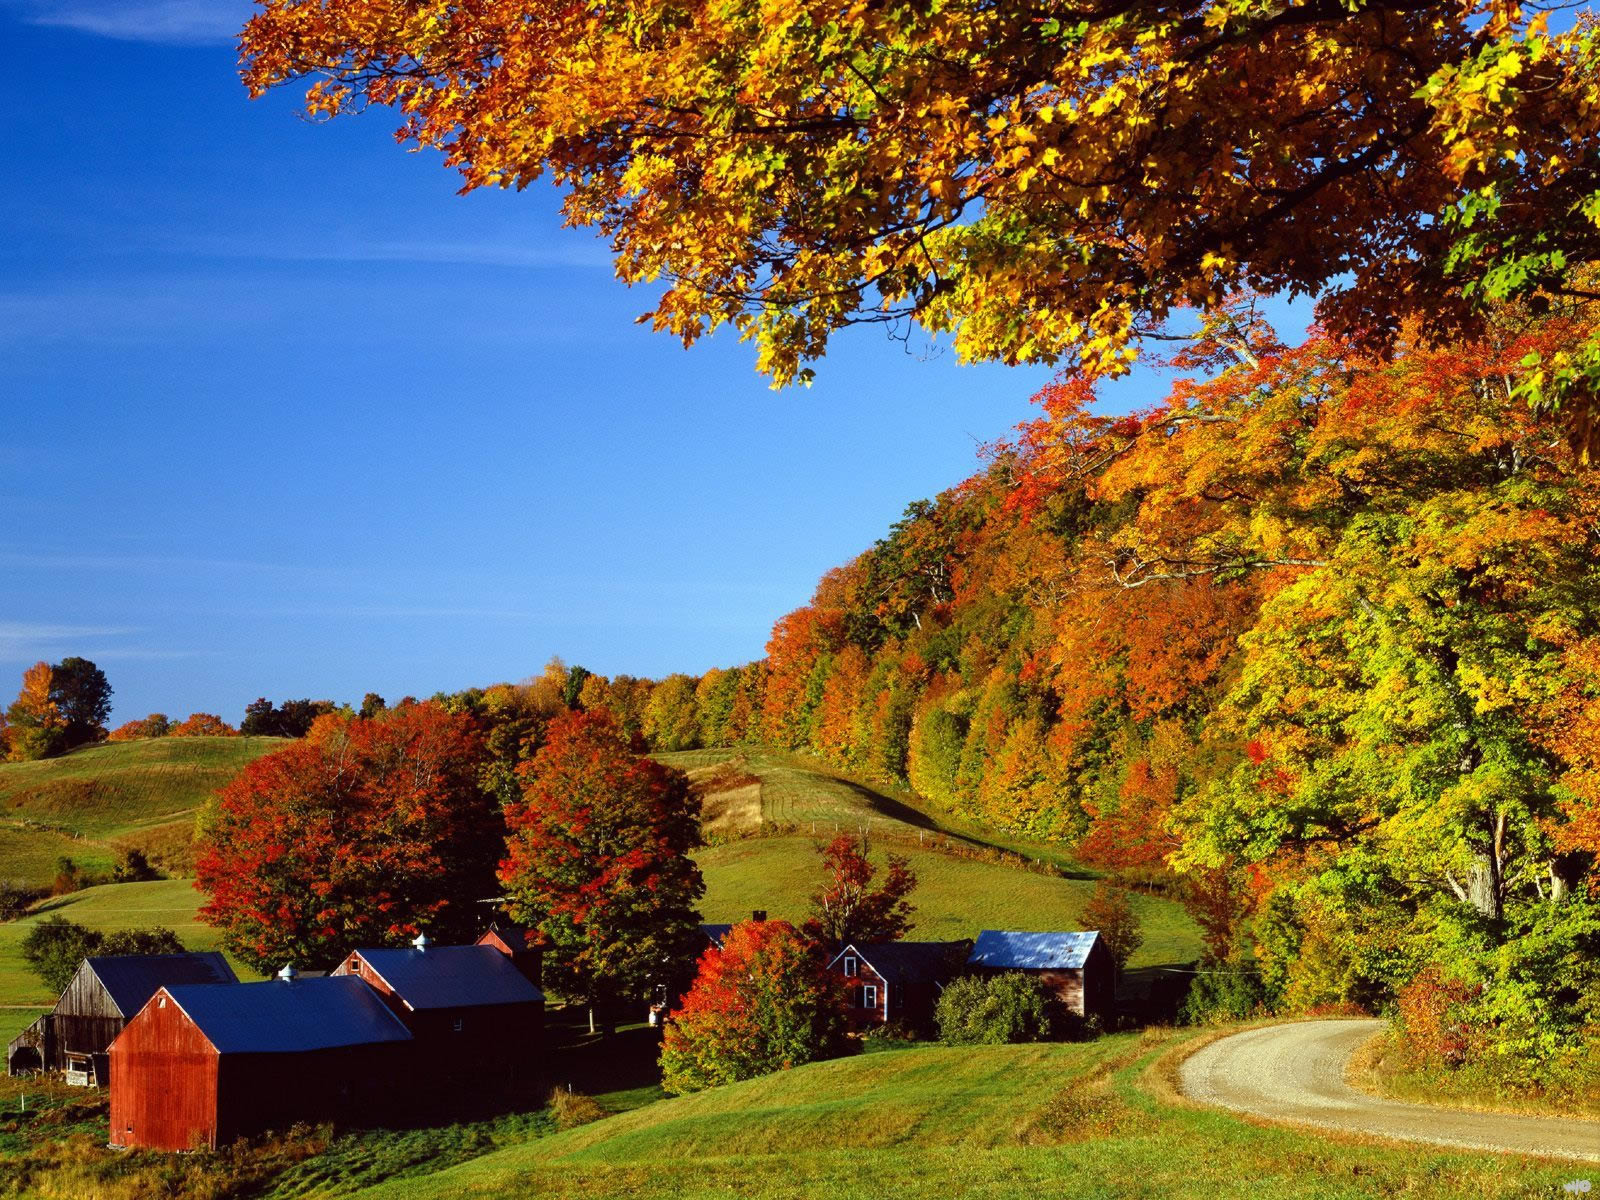 Fantastic Wallpaper Horse Autumn - landscapes-woodstock-in-autumn-vermont  Trends_696411.jpg